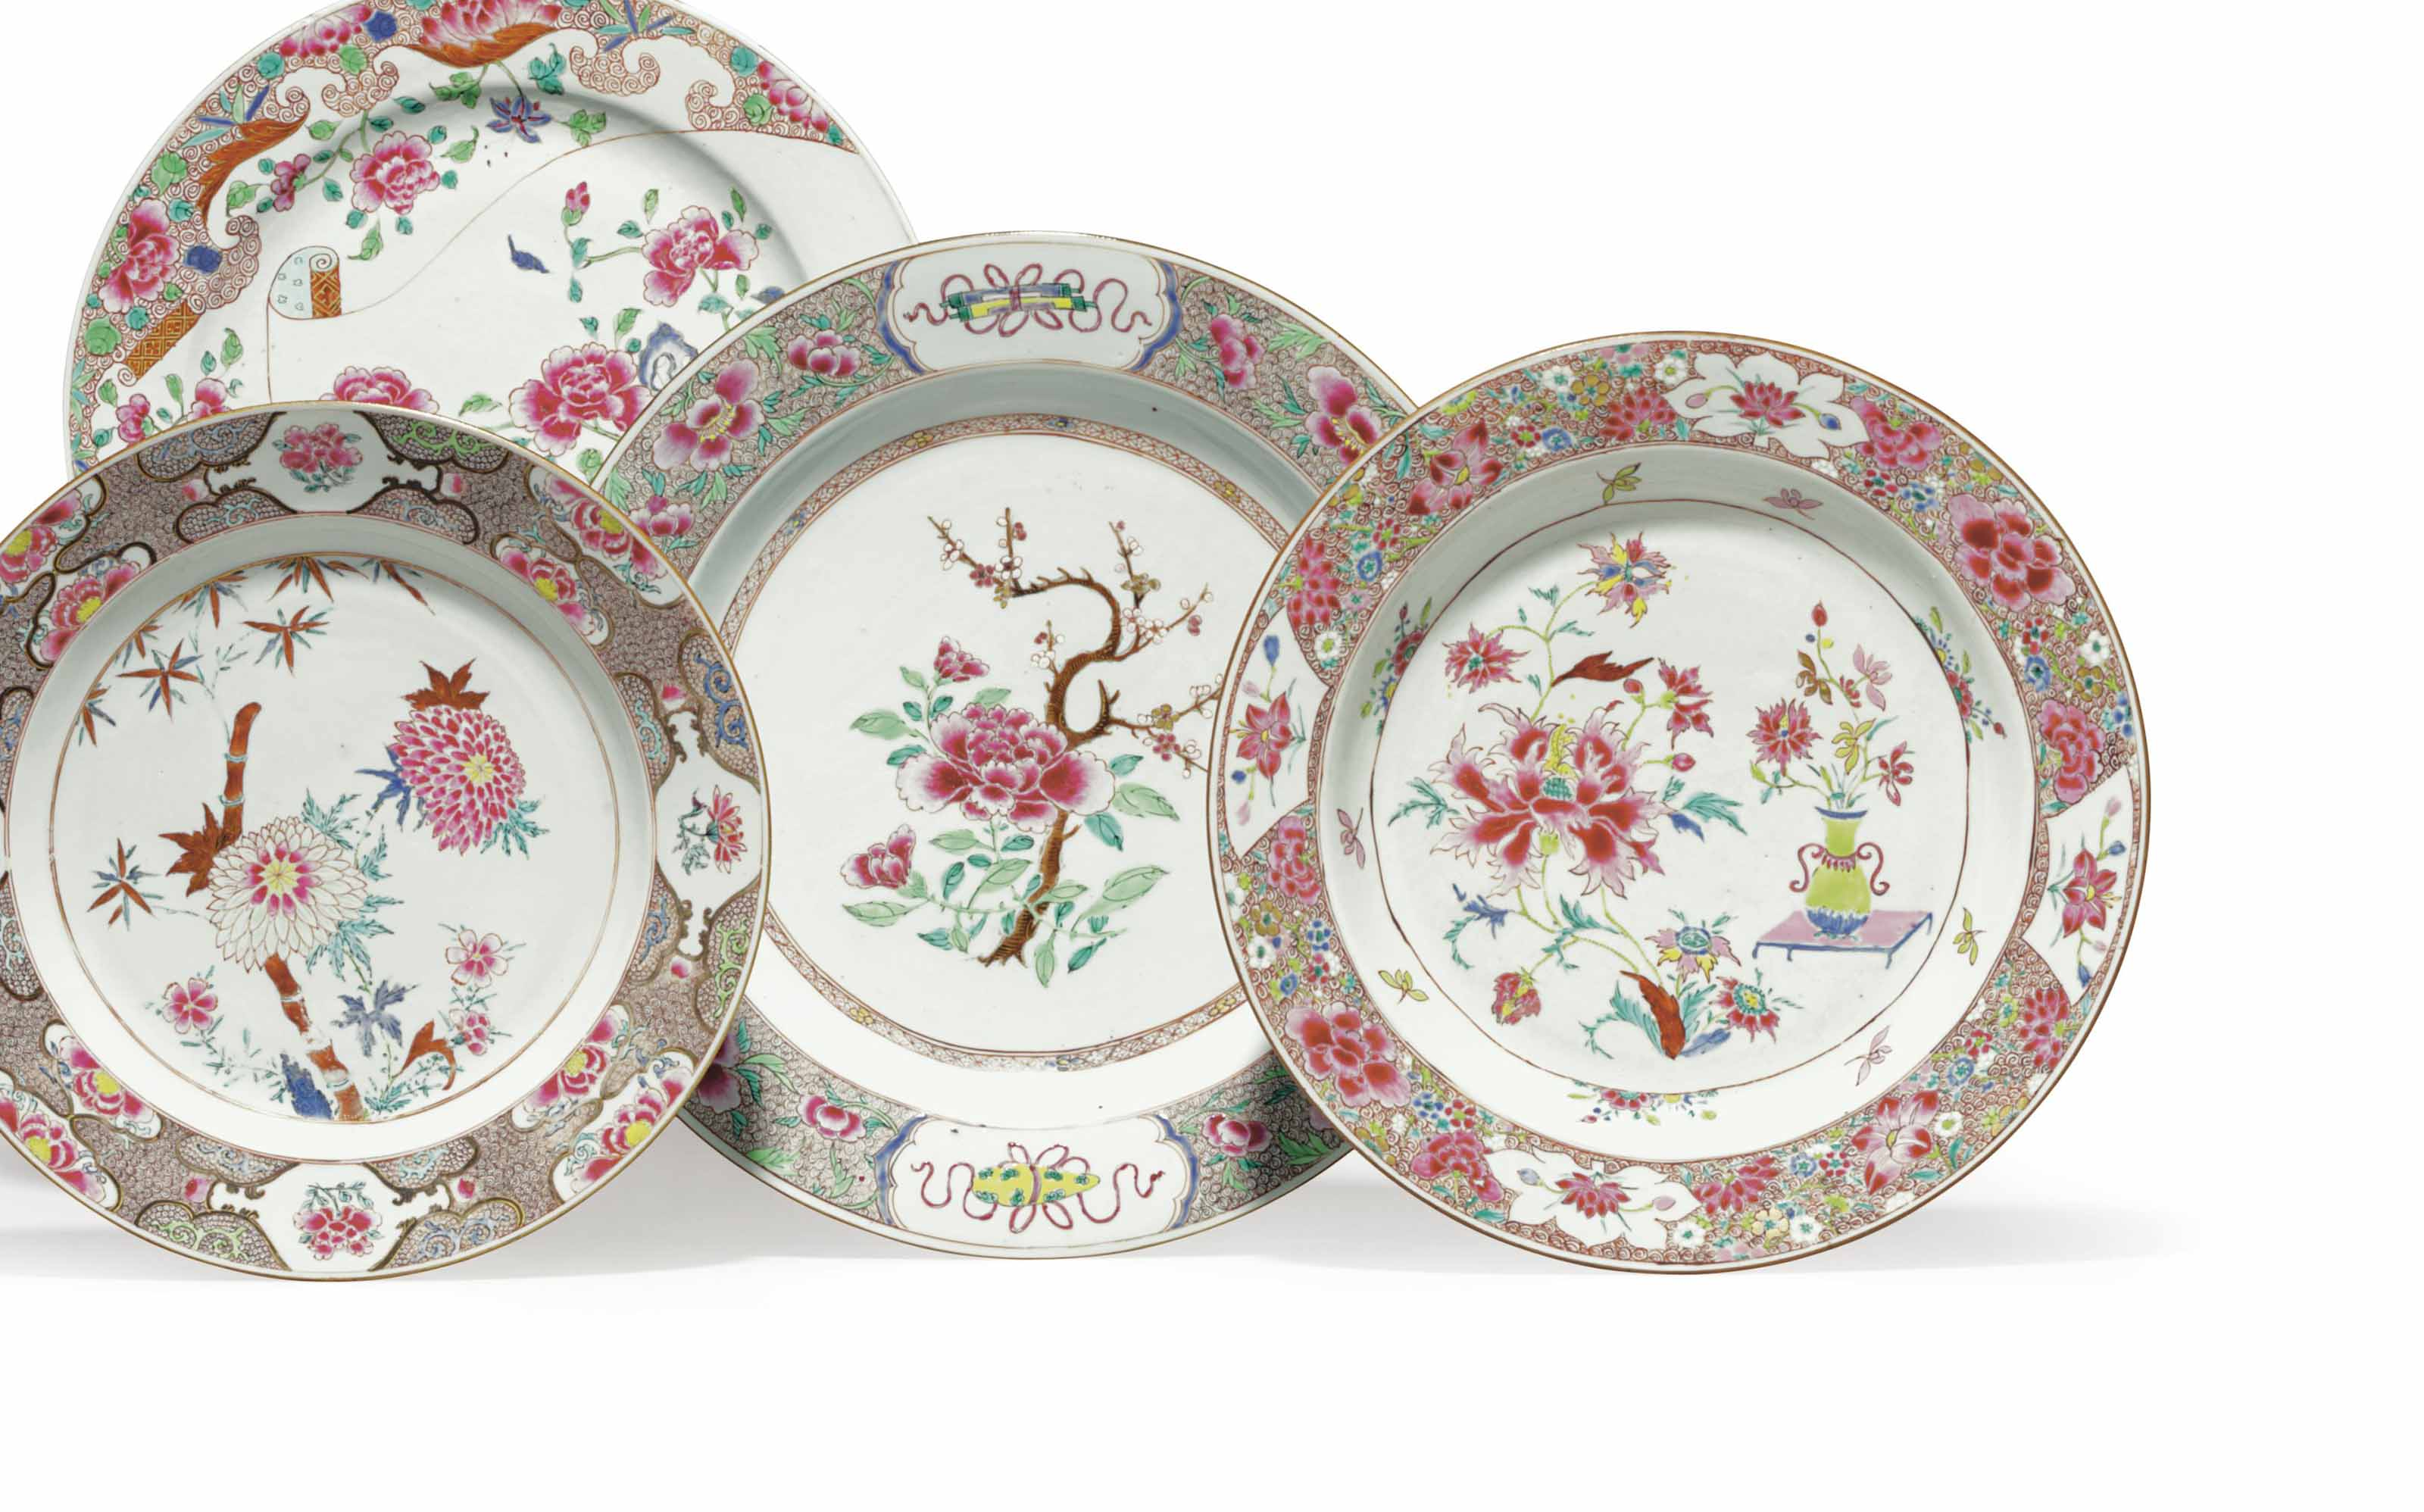 A GROUP OF FOUR CHINESE EXPORT PORCELAIN FAMILLE ROSE CHARGERS